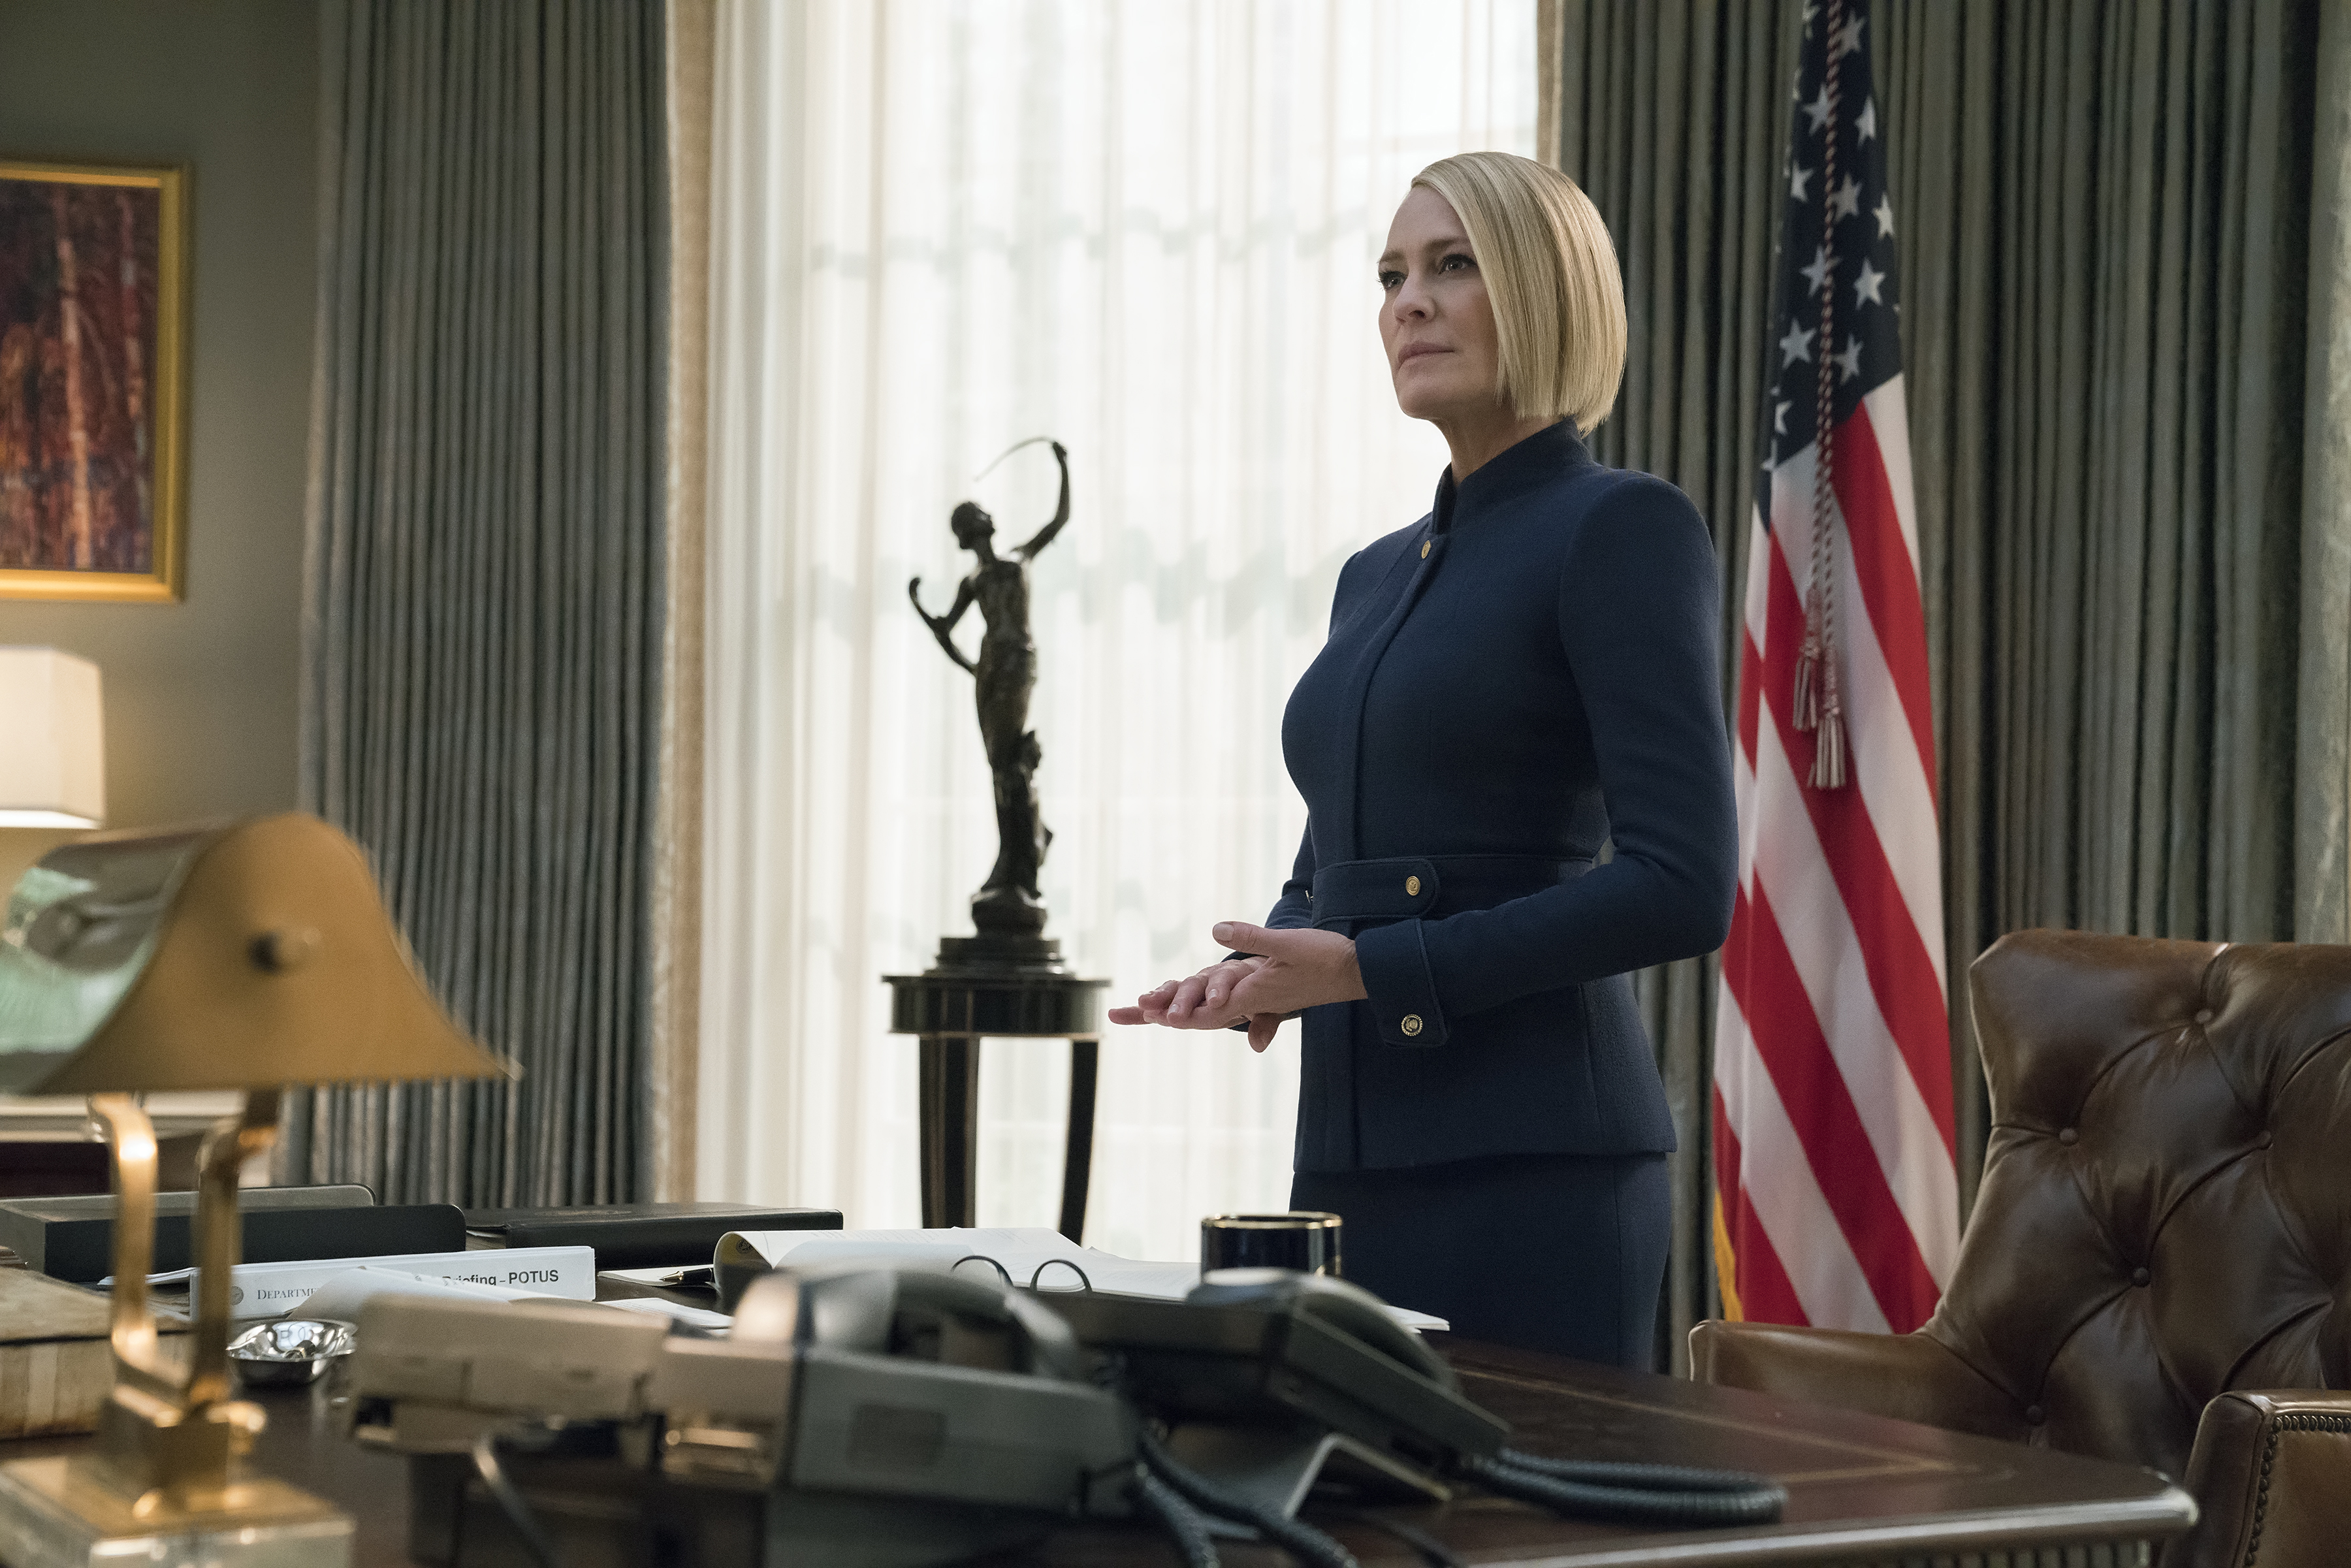 Robin Wright 'becomes worst thing to happen to US' in House of Cards' final season trailer